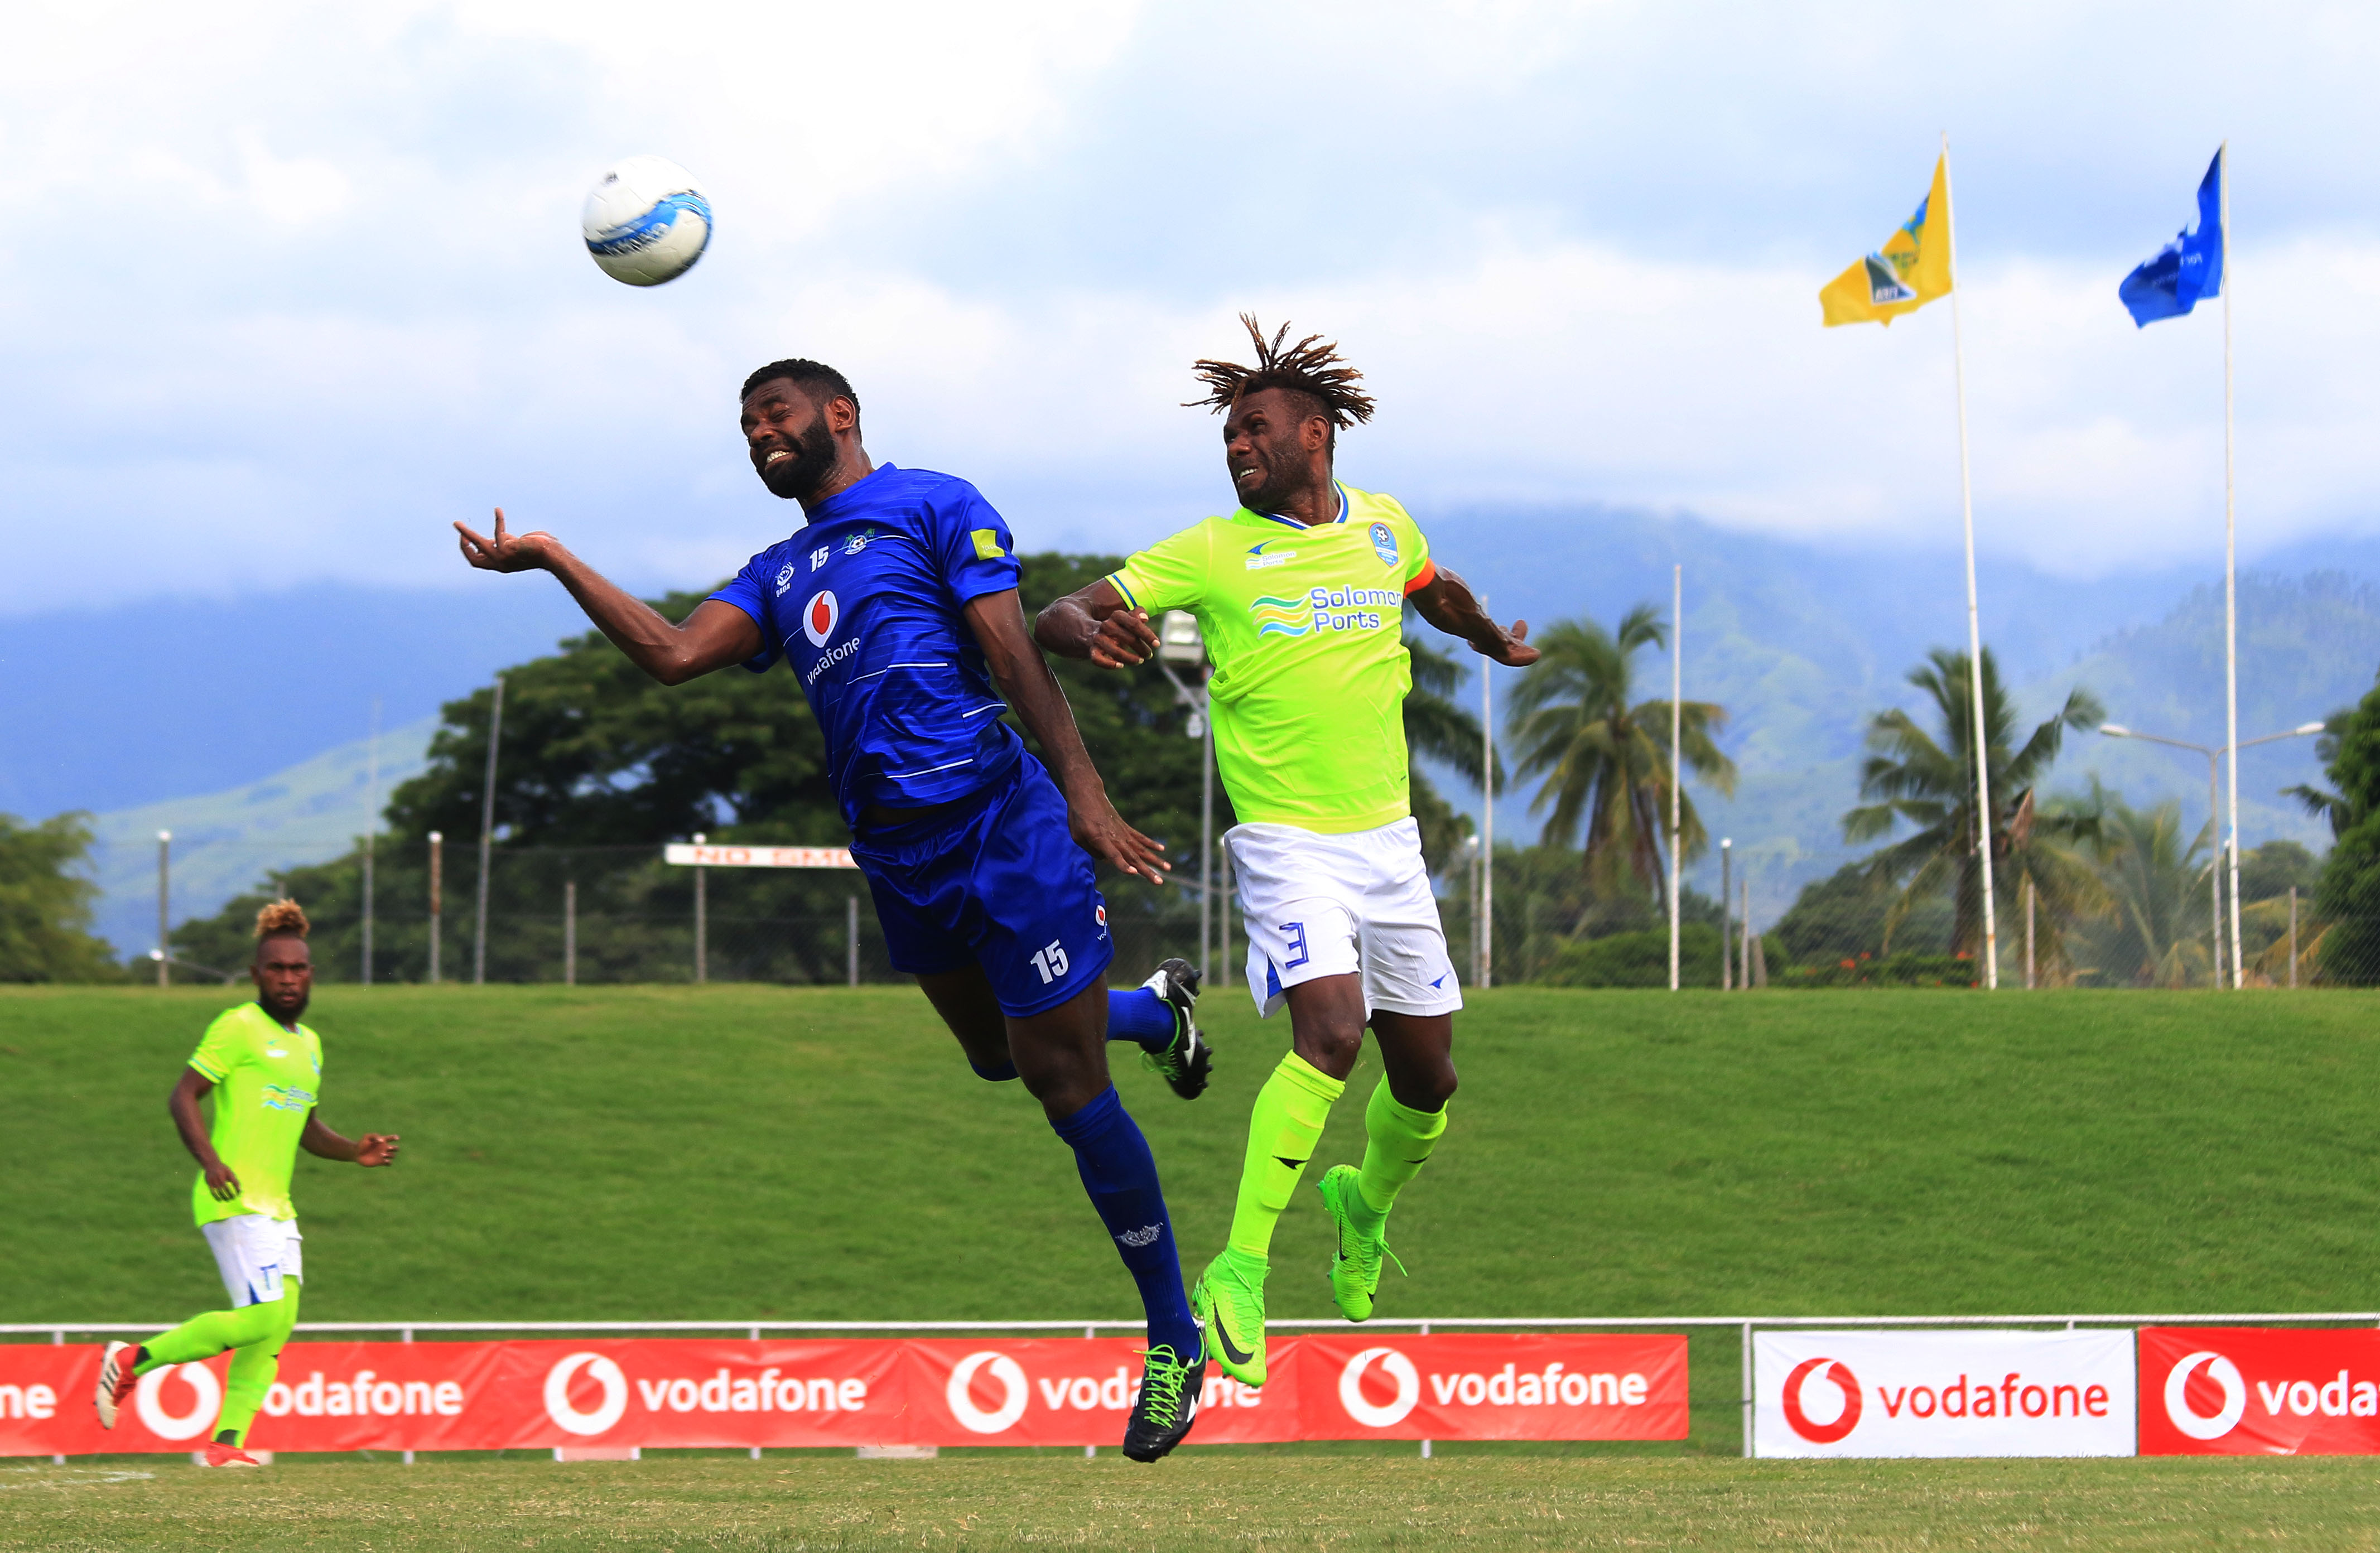 Aerial battle during the game between Henderson Eels (Solomon Island) and Lautoka FC (Fiji) in OFC Champions League